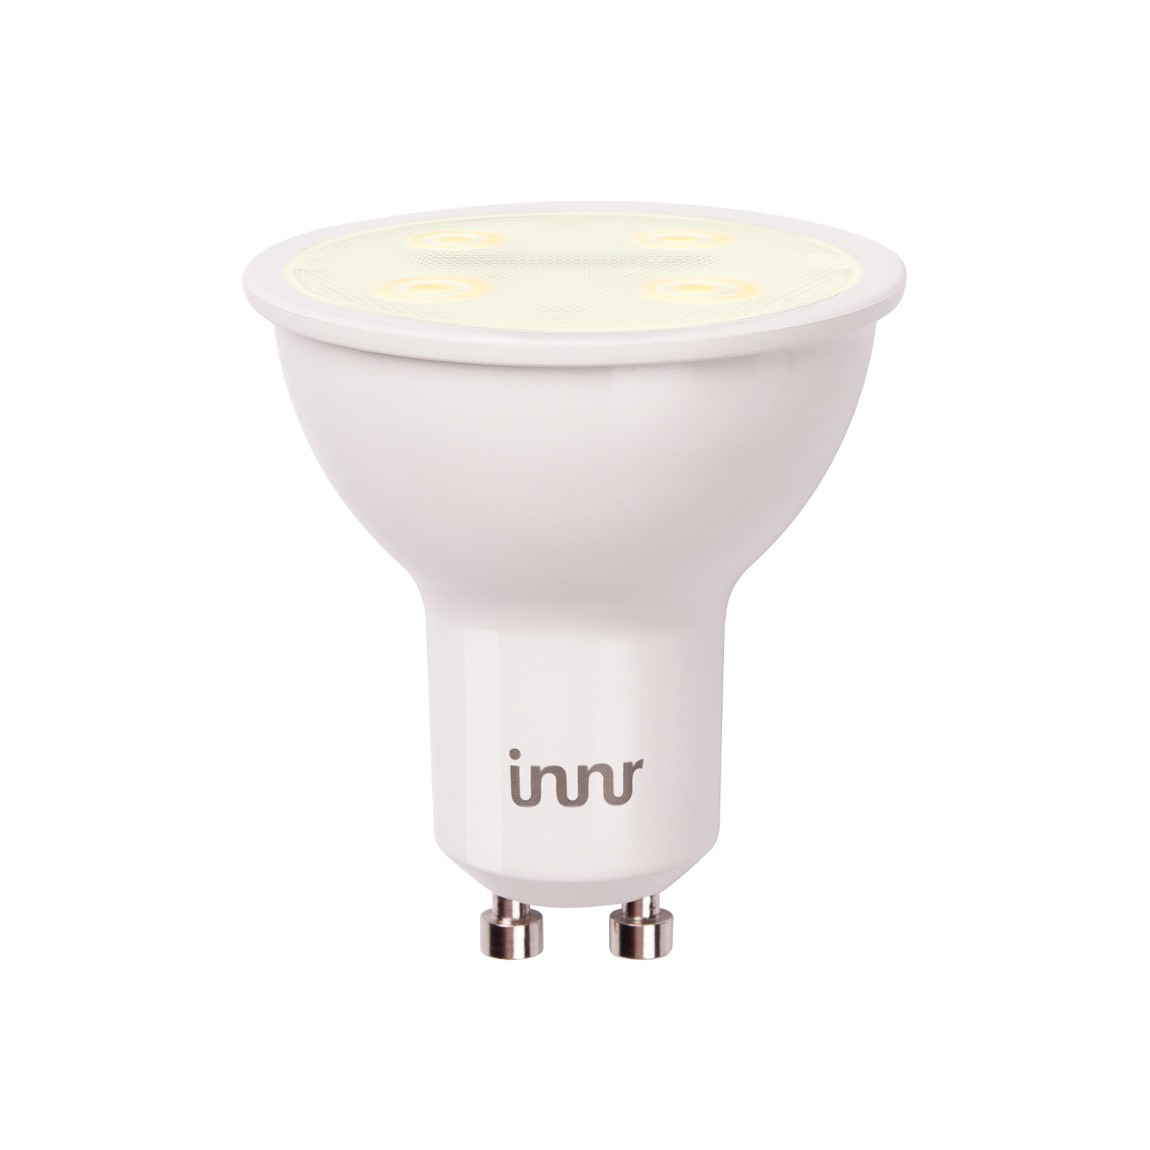 Innr RS 125 GU10 Spotlight - LED-Lampe - Weiß